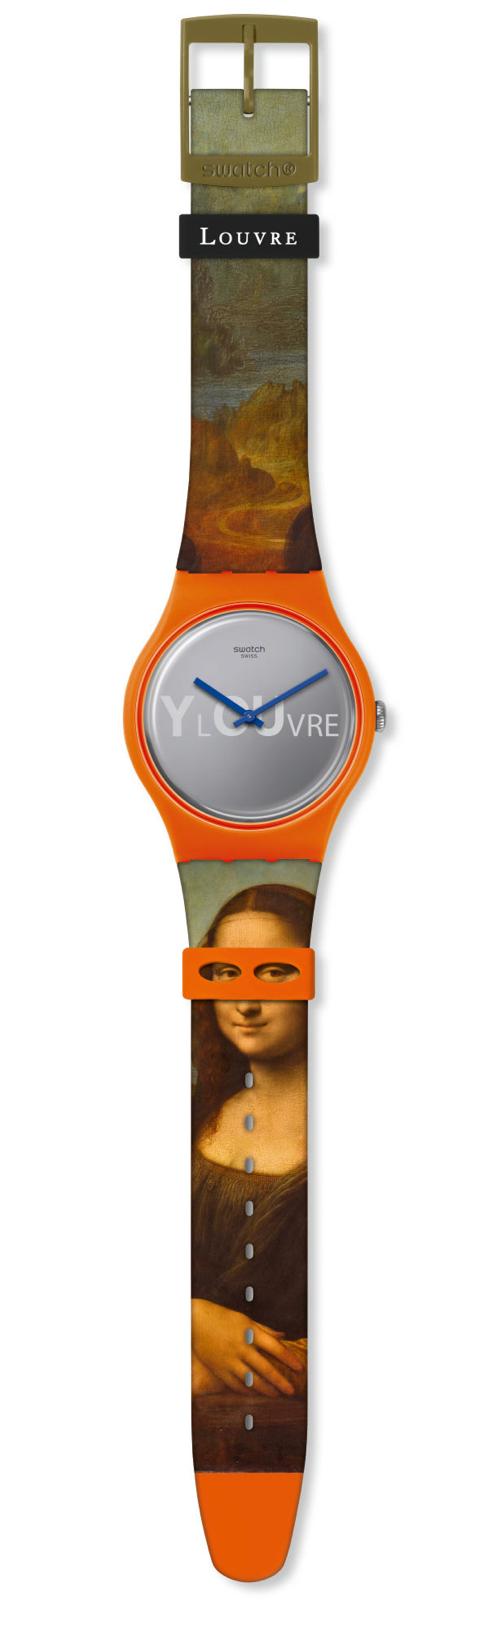 Swatch For Louvre Lisa Masquee Mona Lisa Leonardo Limited Watch New with Box